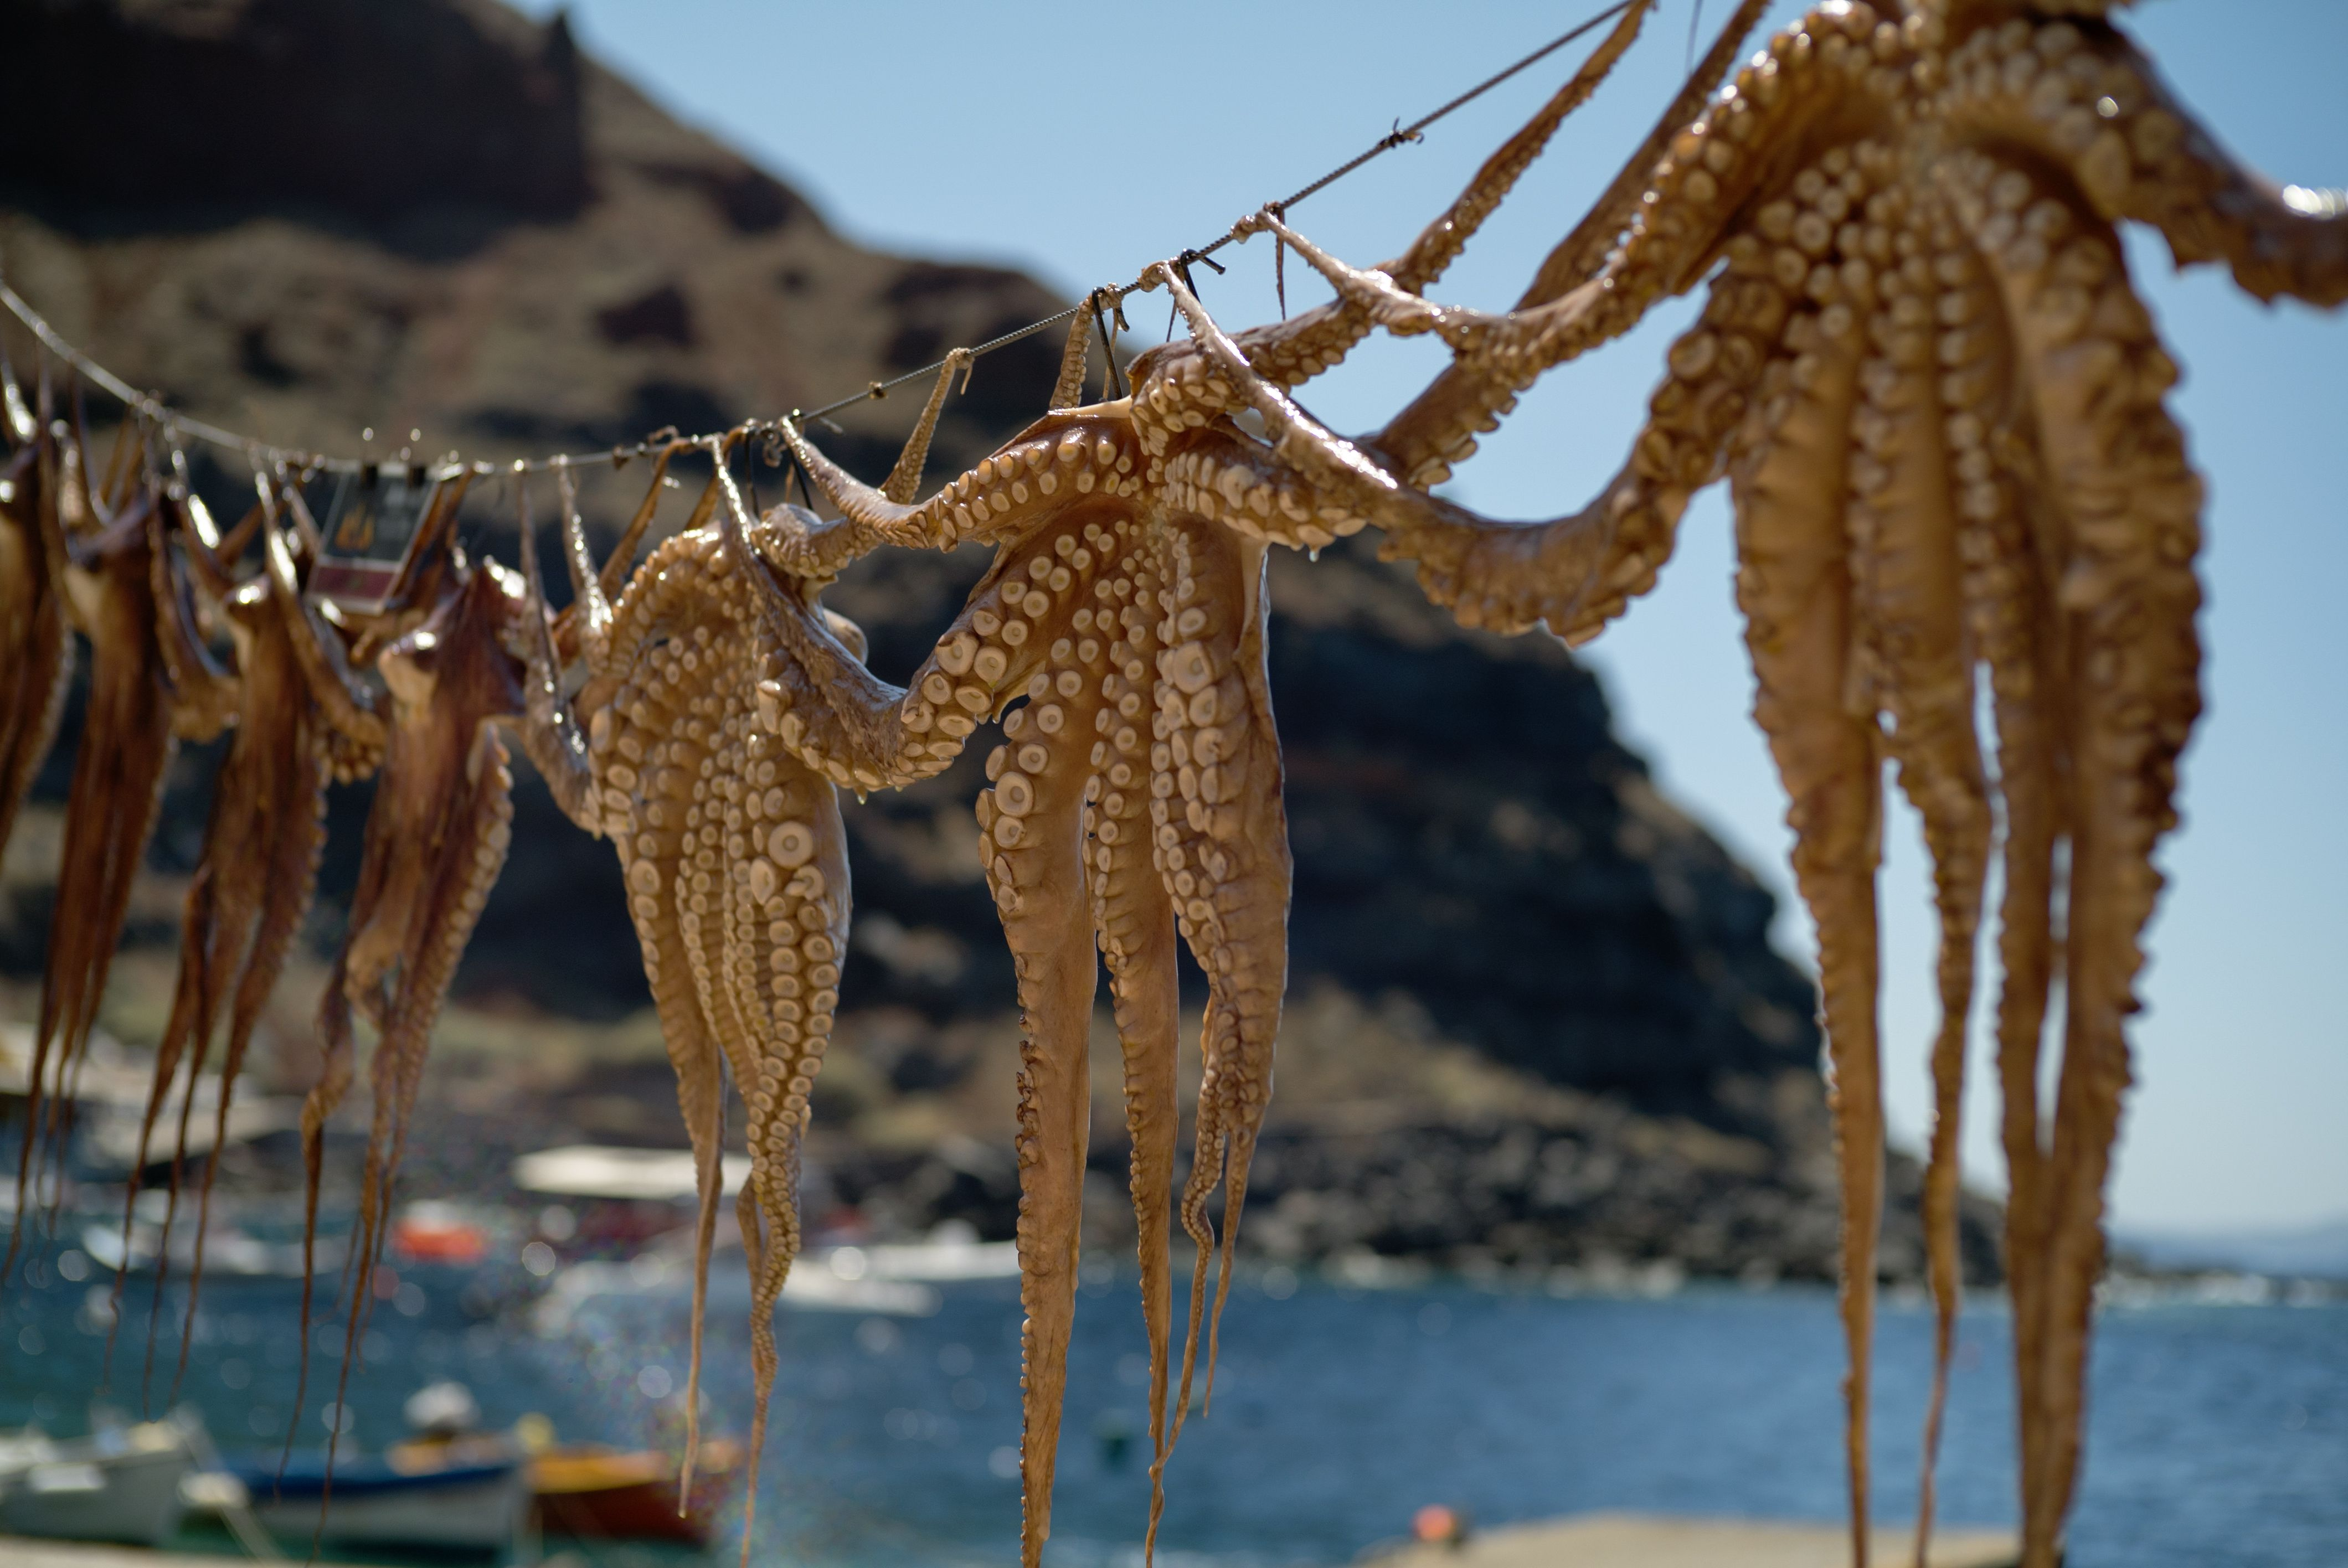 Octopus drying out under the harsh sun of #santorini in #amoudi bay. Watch the full video of our stay here https://vimeo.com/135410327   #greece #holidays #summer #beach